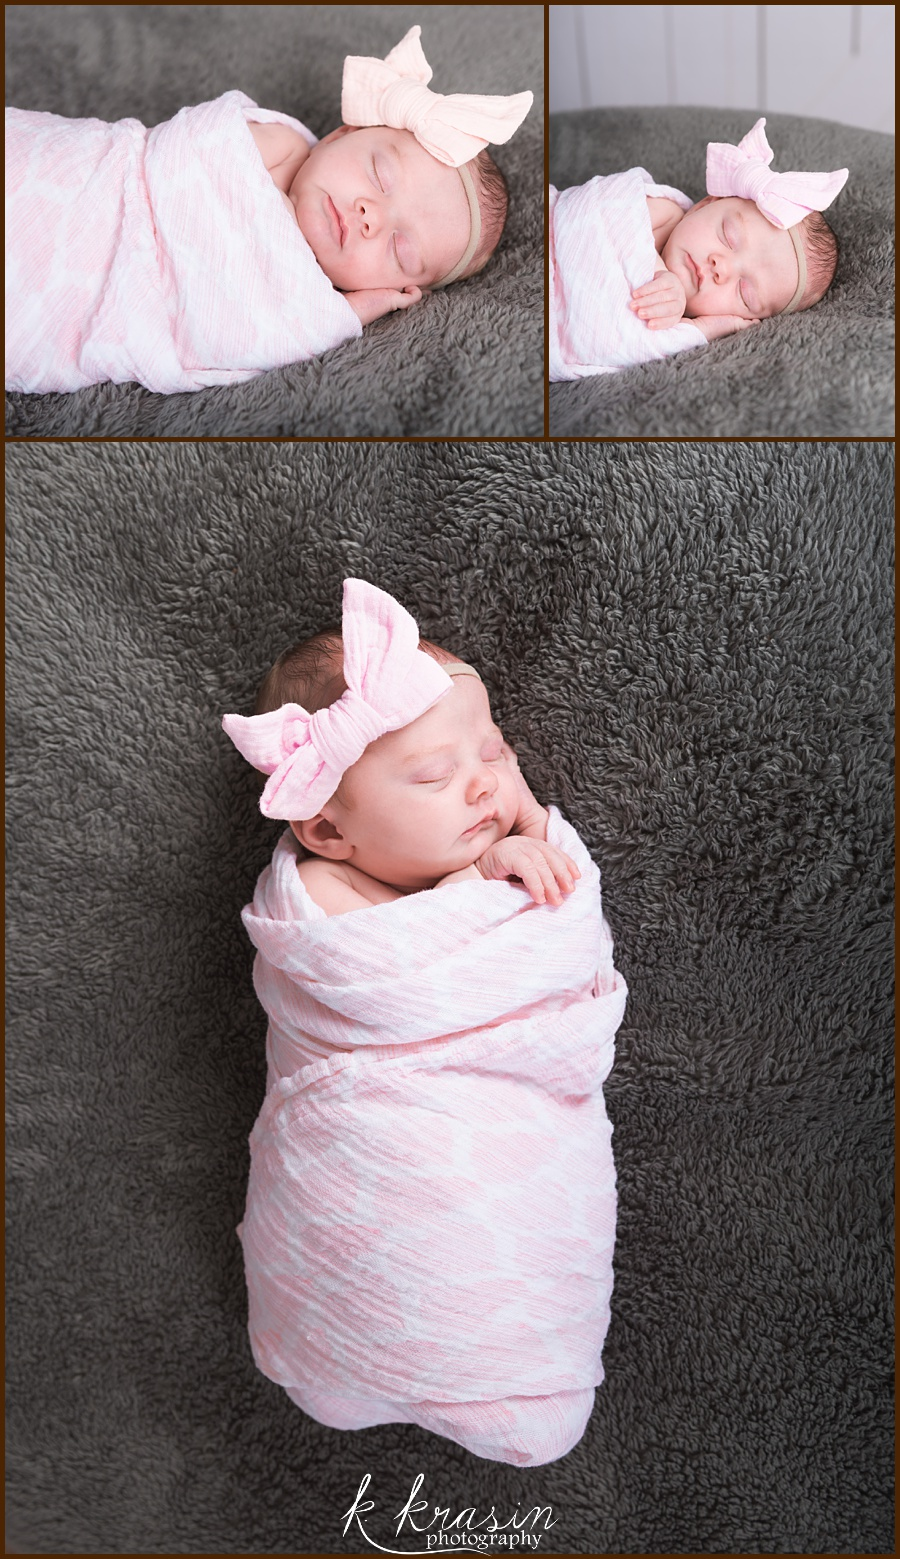 Collage of photos of newborn girl swaddled sleeping on gray blanket